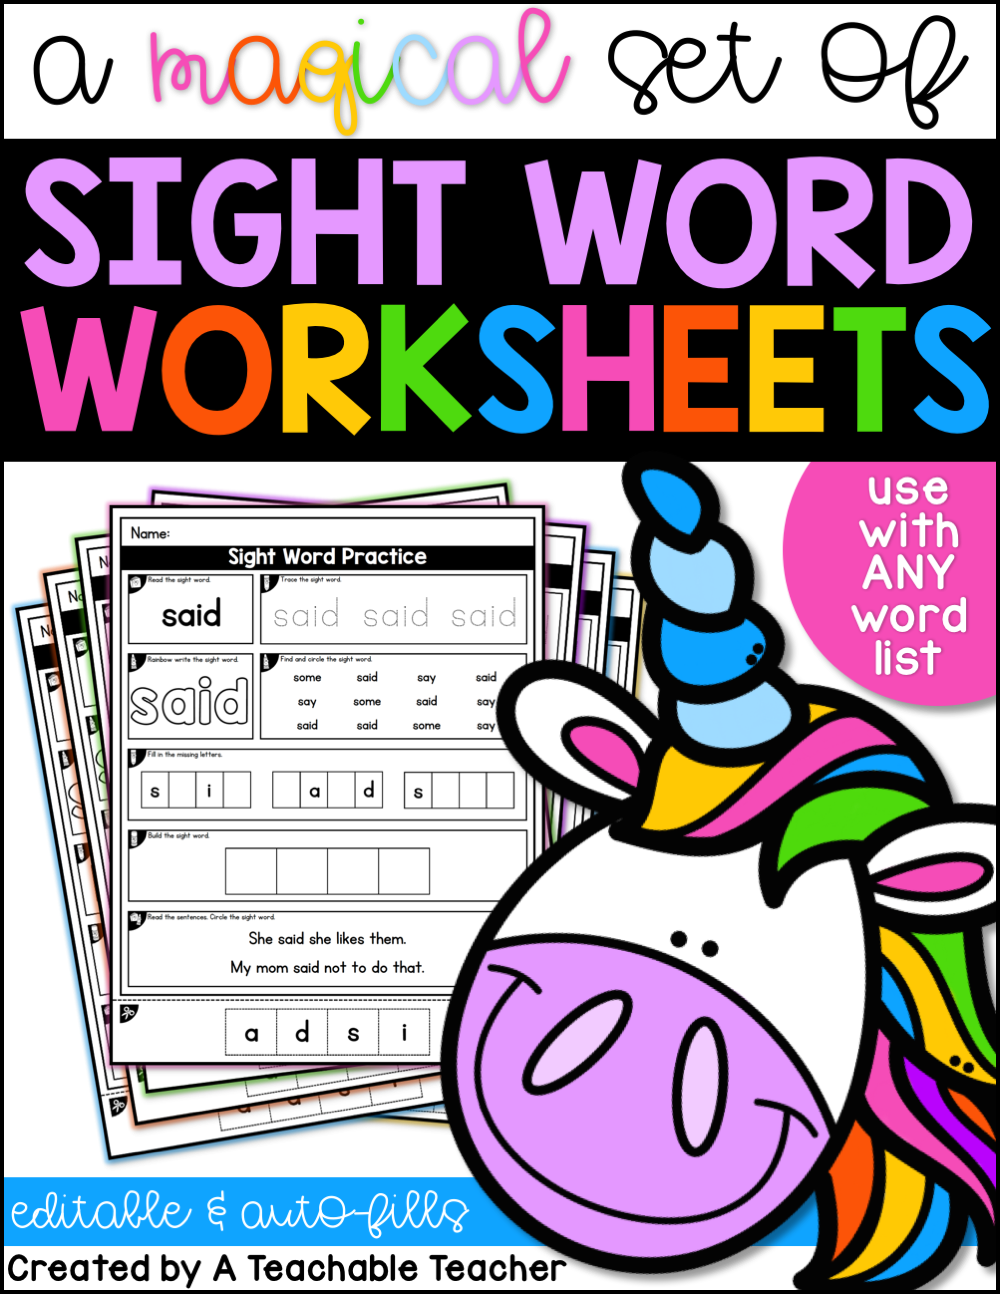 Editable Sight Word Worksheets These Worksheets Are Awesome They Auto Fill With Any Sight Sight Words Kindergarten Sight Word Worksheets Sight Word Practice [ 1294 x 1000 Pixel ]